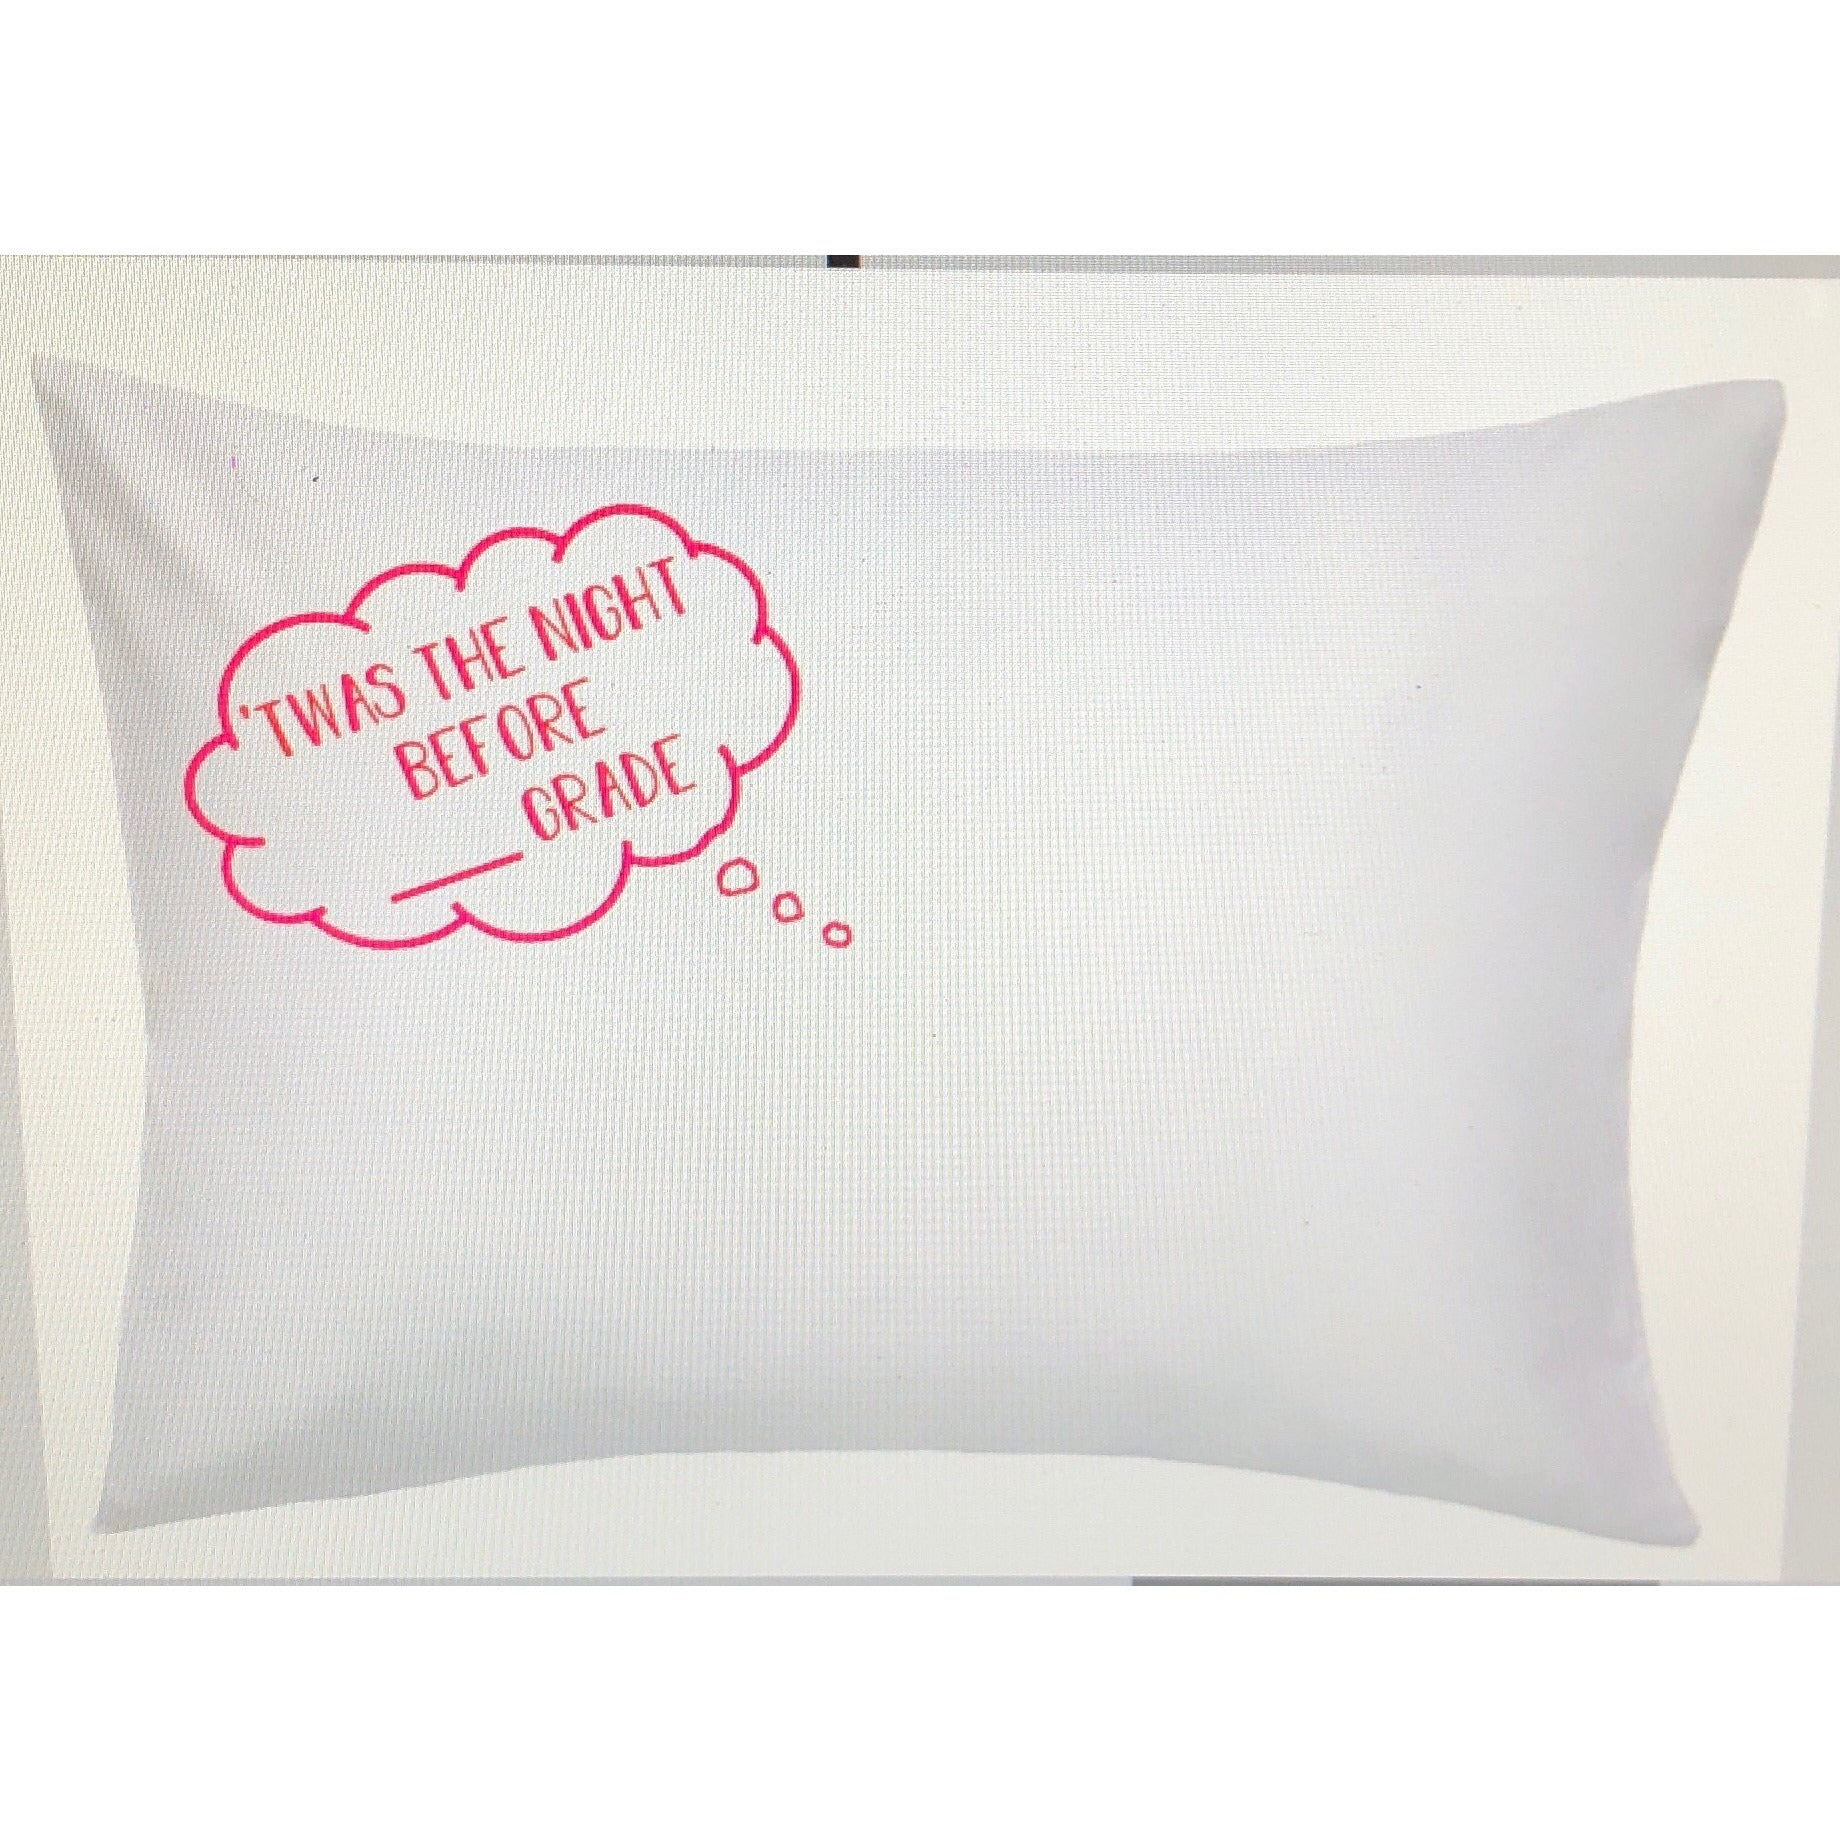 Back to School Pillowcase